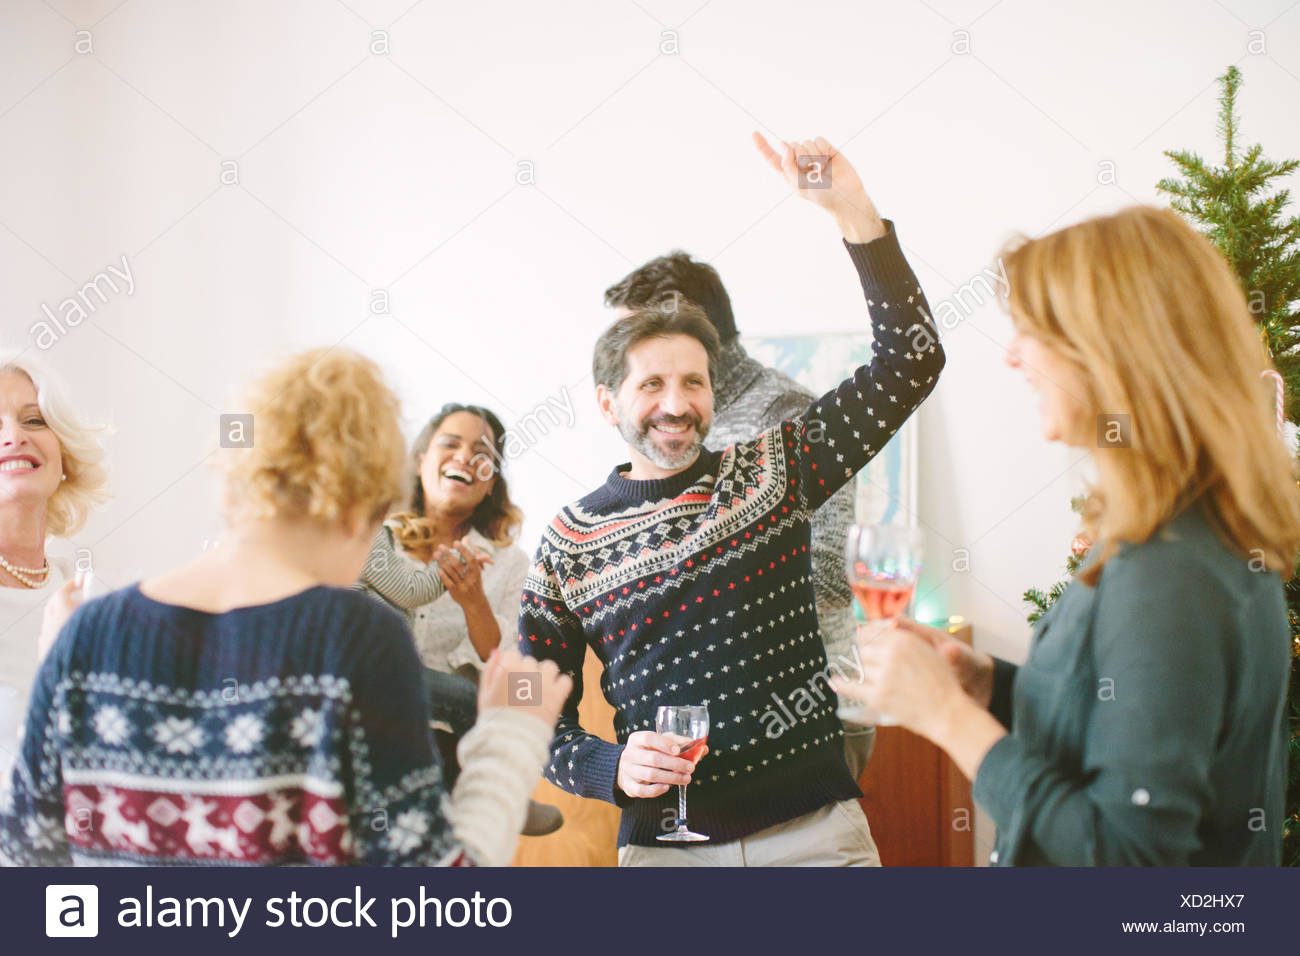 Family dancing at family Christmas party - Stock Image